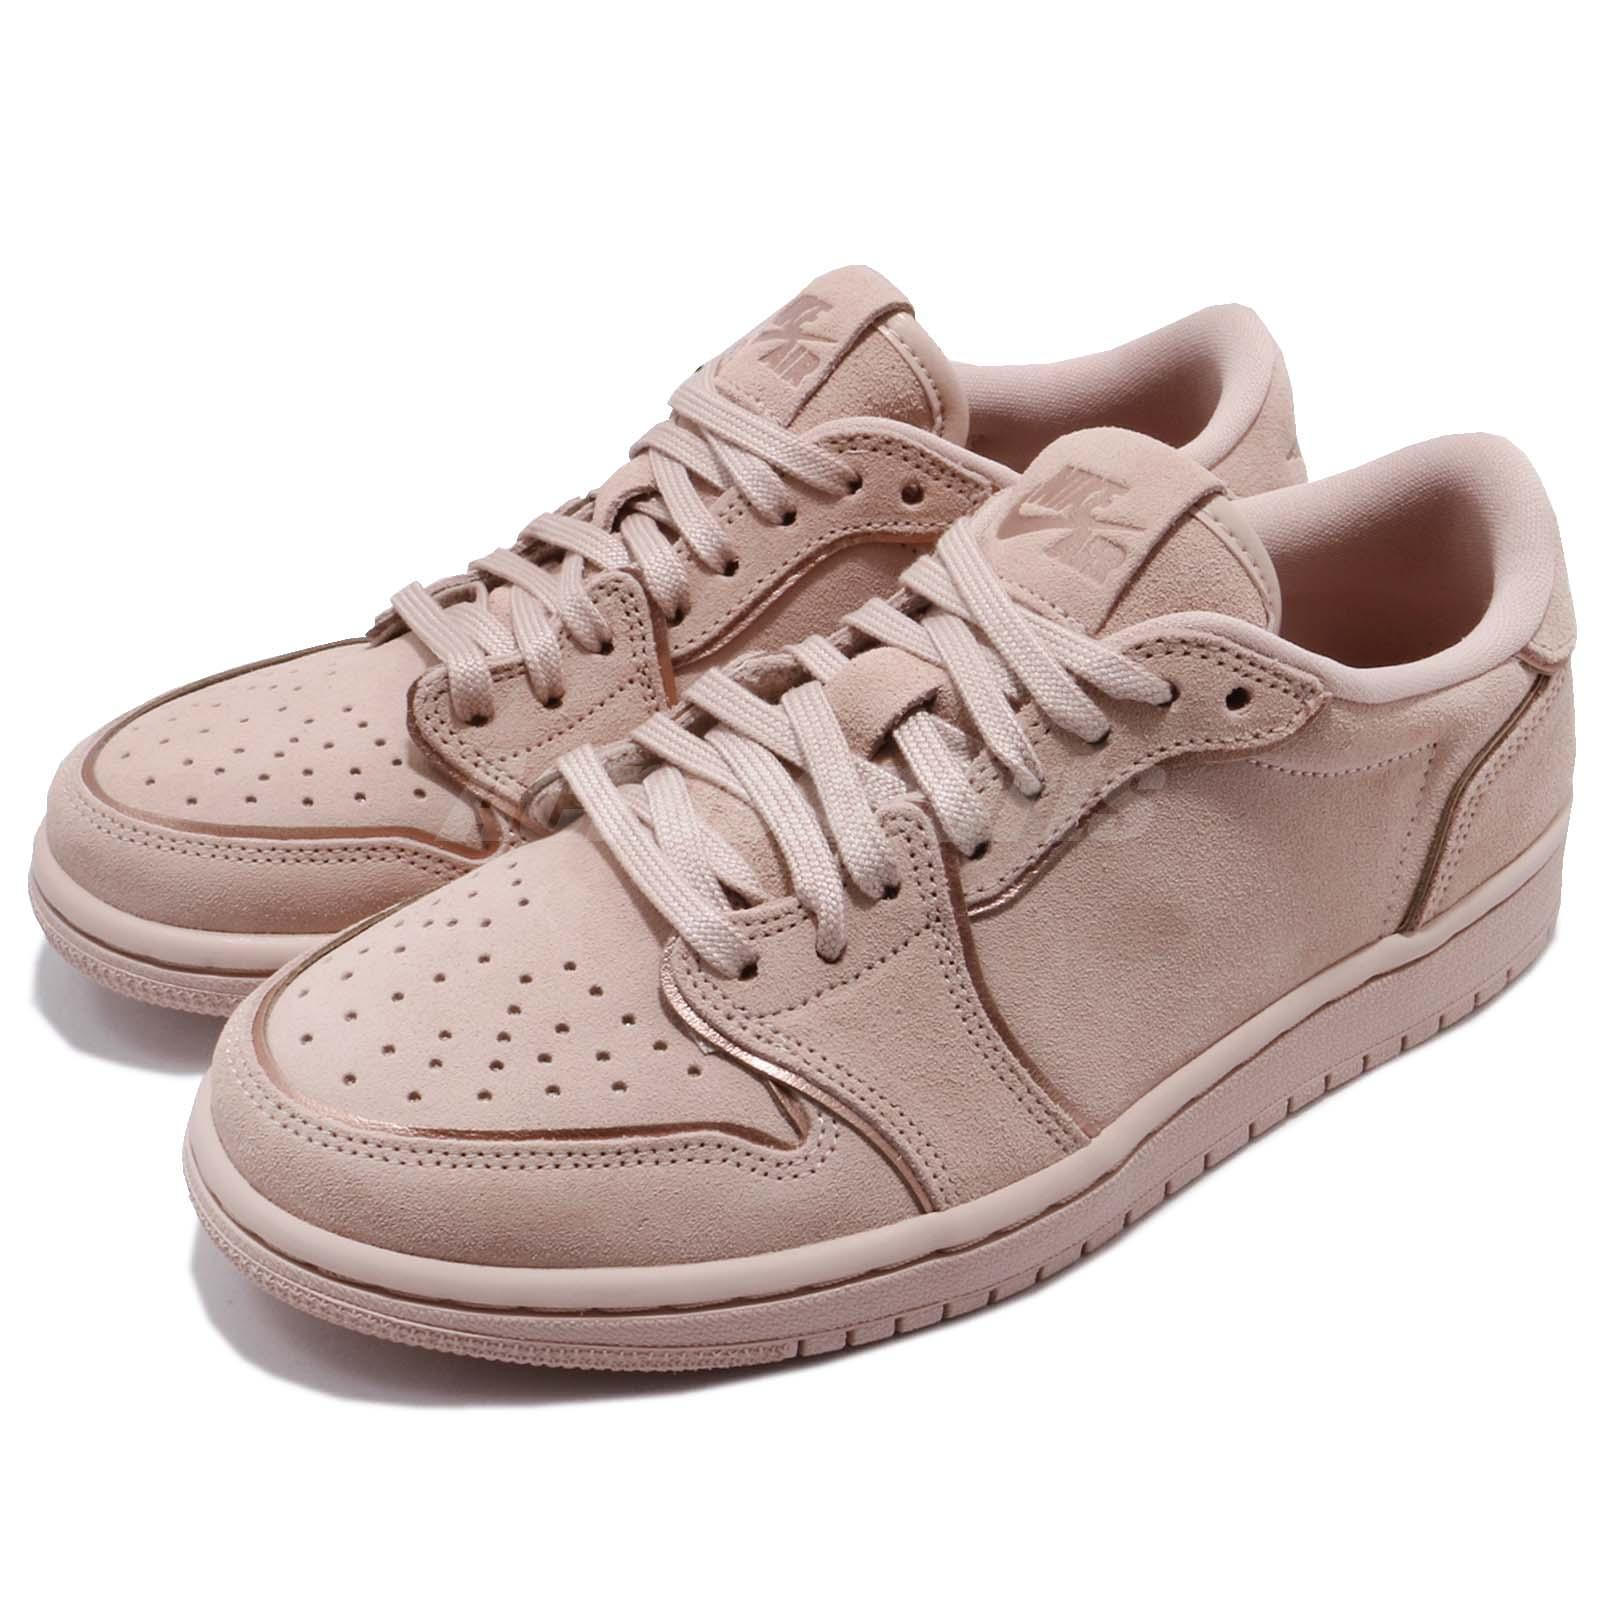 sale retailer e68a2 ba1f4 Details about Nike Wmns Air Jordan 1 Retro Low NS No Swoosh Beige Women  Shoes AJ1 AO1935-204